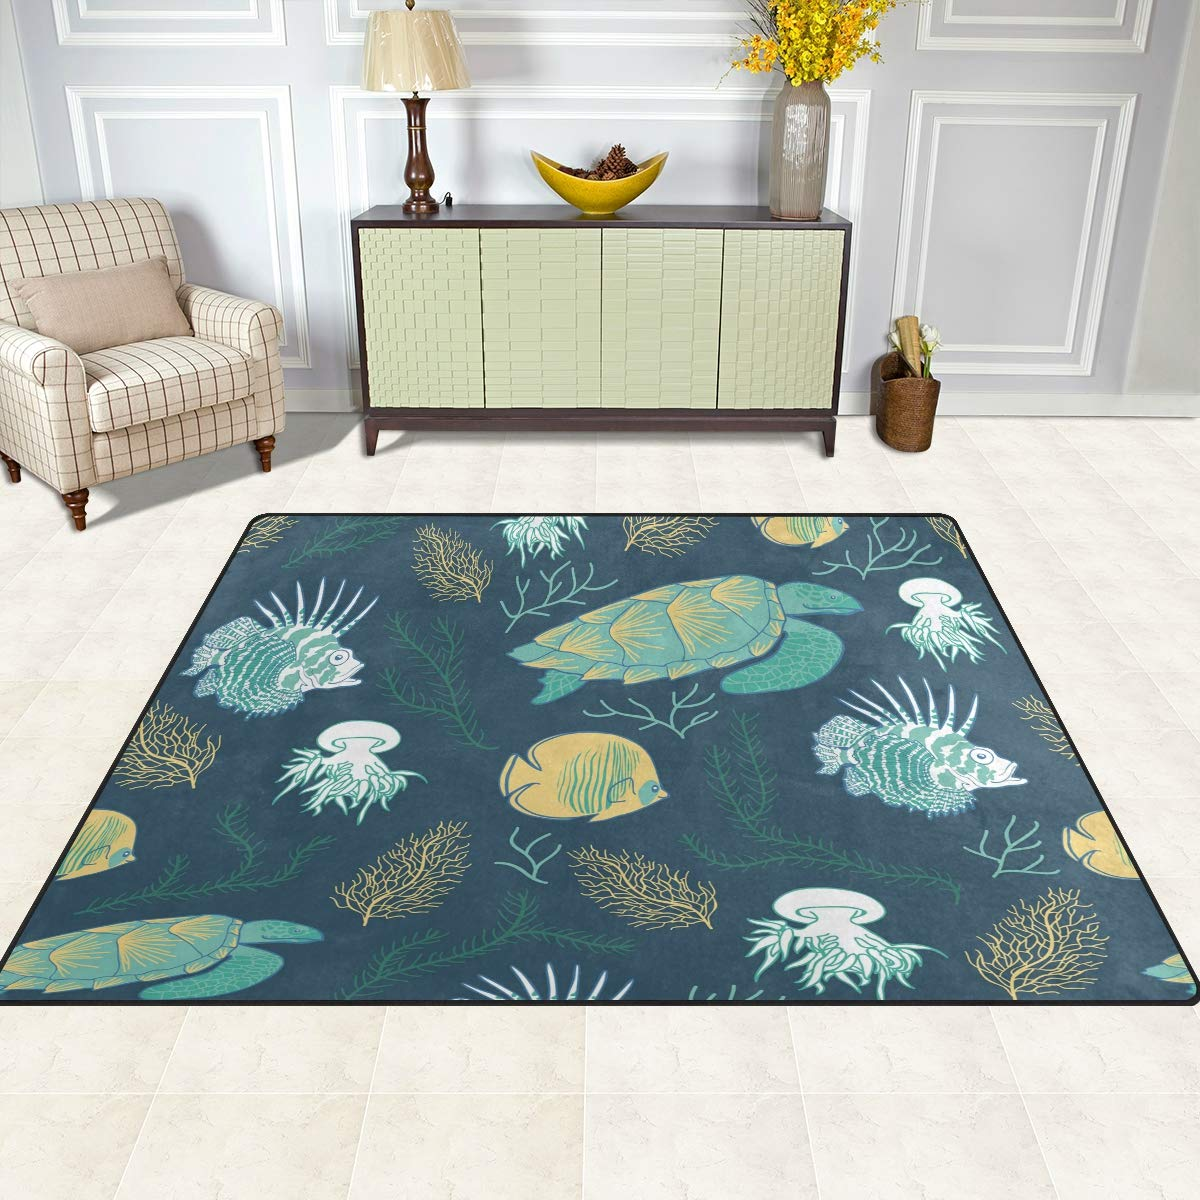 ALAZA Fire Fish Turtle Jellyfish and Corals Ocean Animals Area Rug Soft Non Slip Floor Mat Washable Carpet for Bedroom Living Room 1 Piece 4x5 Feet